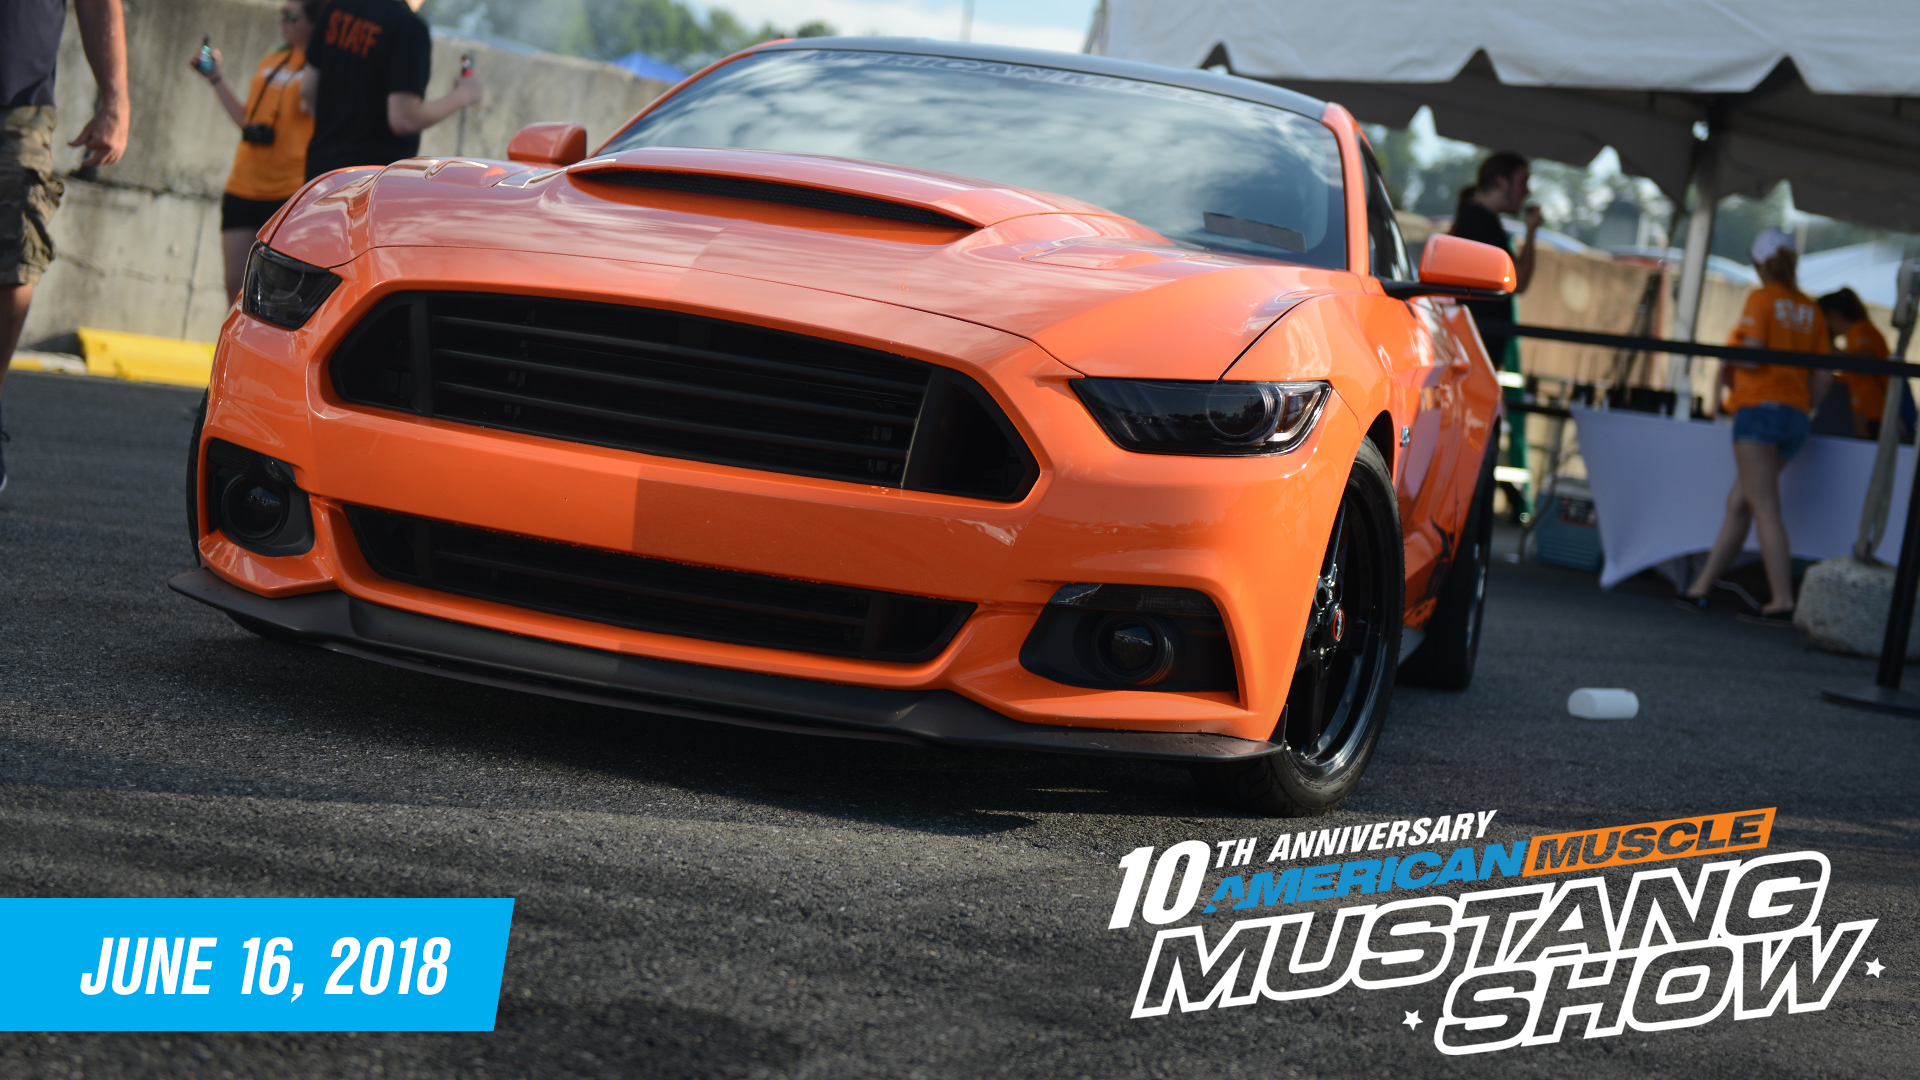 2018 Mustang Show American Muscle : Information on collecting cars ...